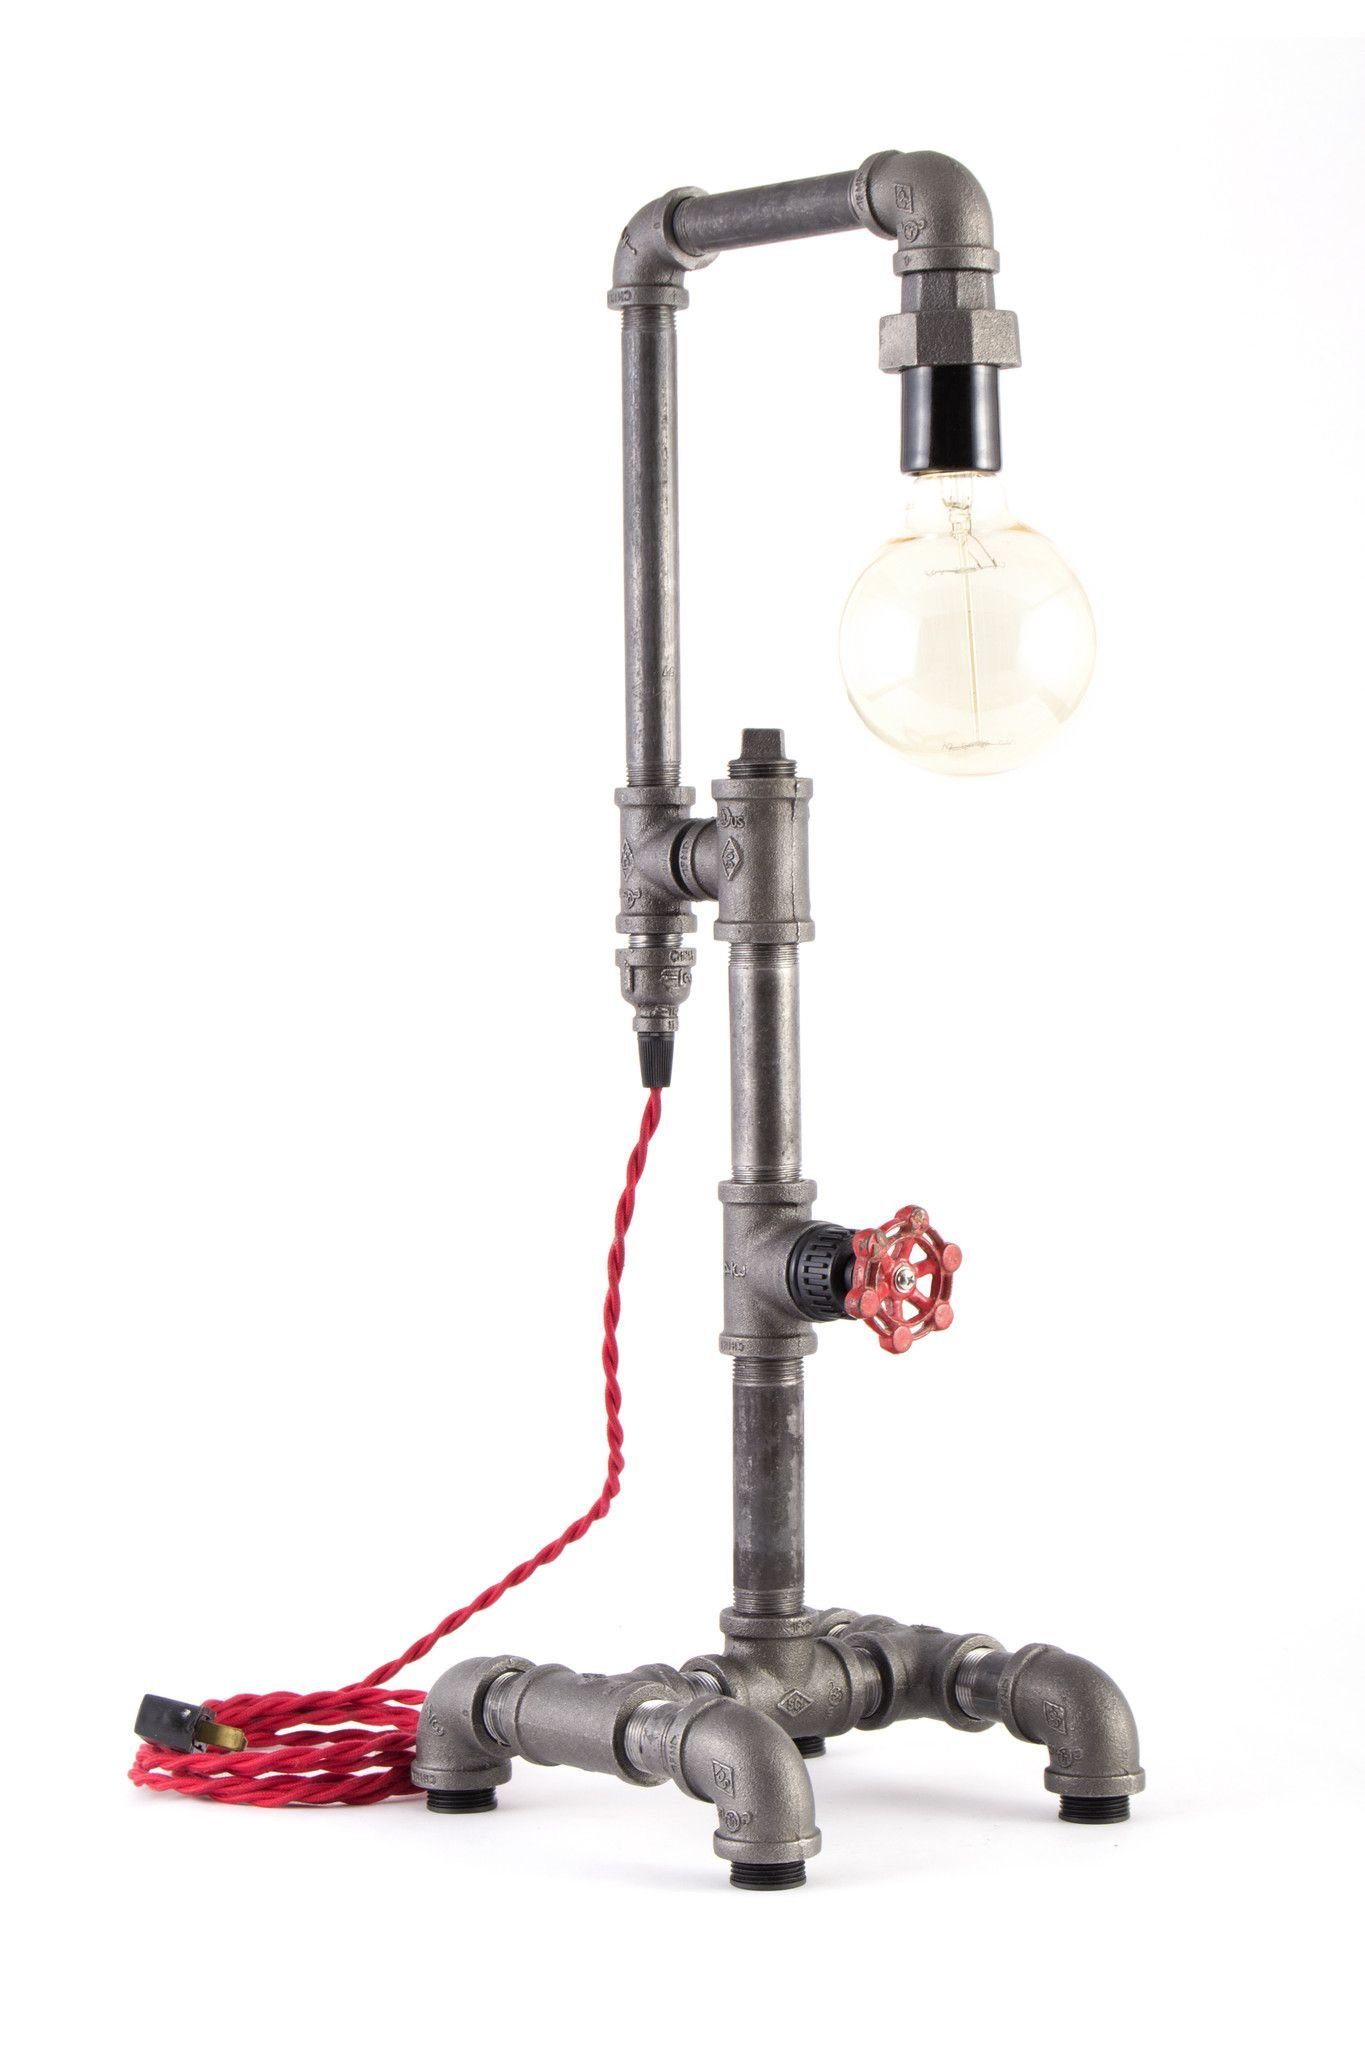 The Michigan Lamps Can Be Turned On And Off By Rotating A Vintage Faucet Handle And Our Cloth